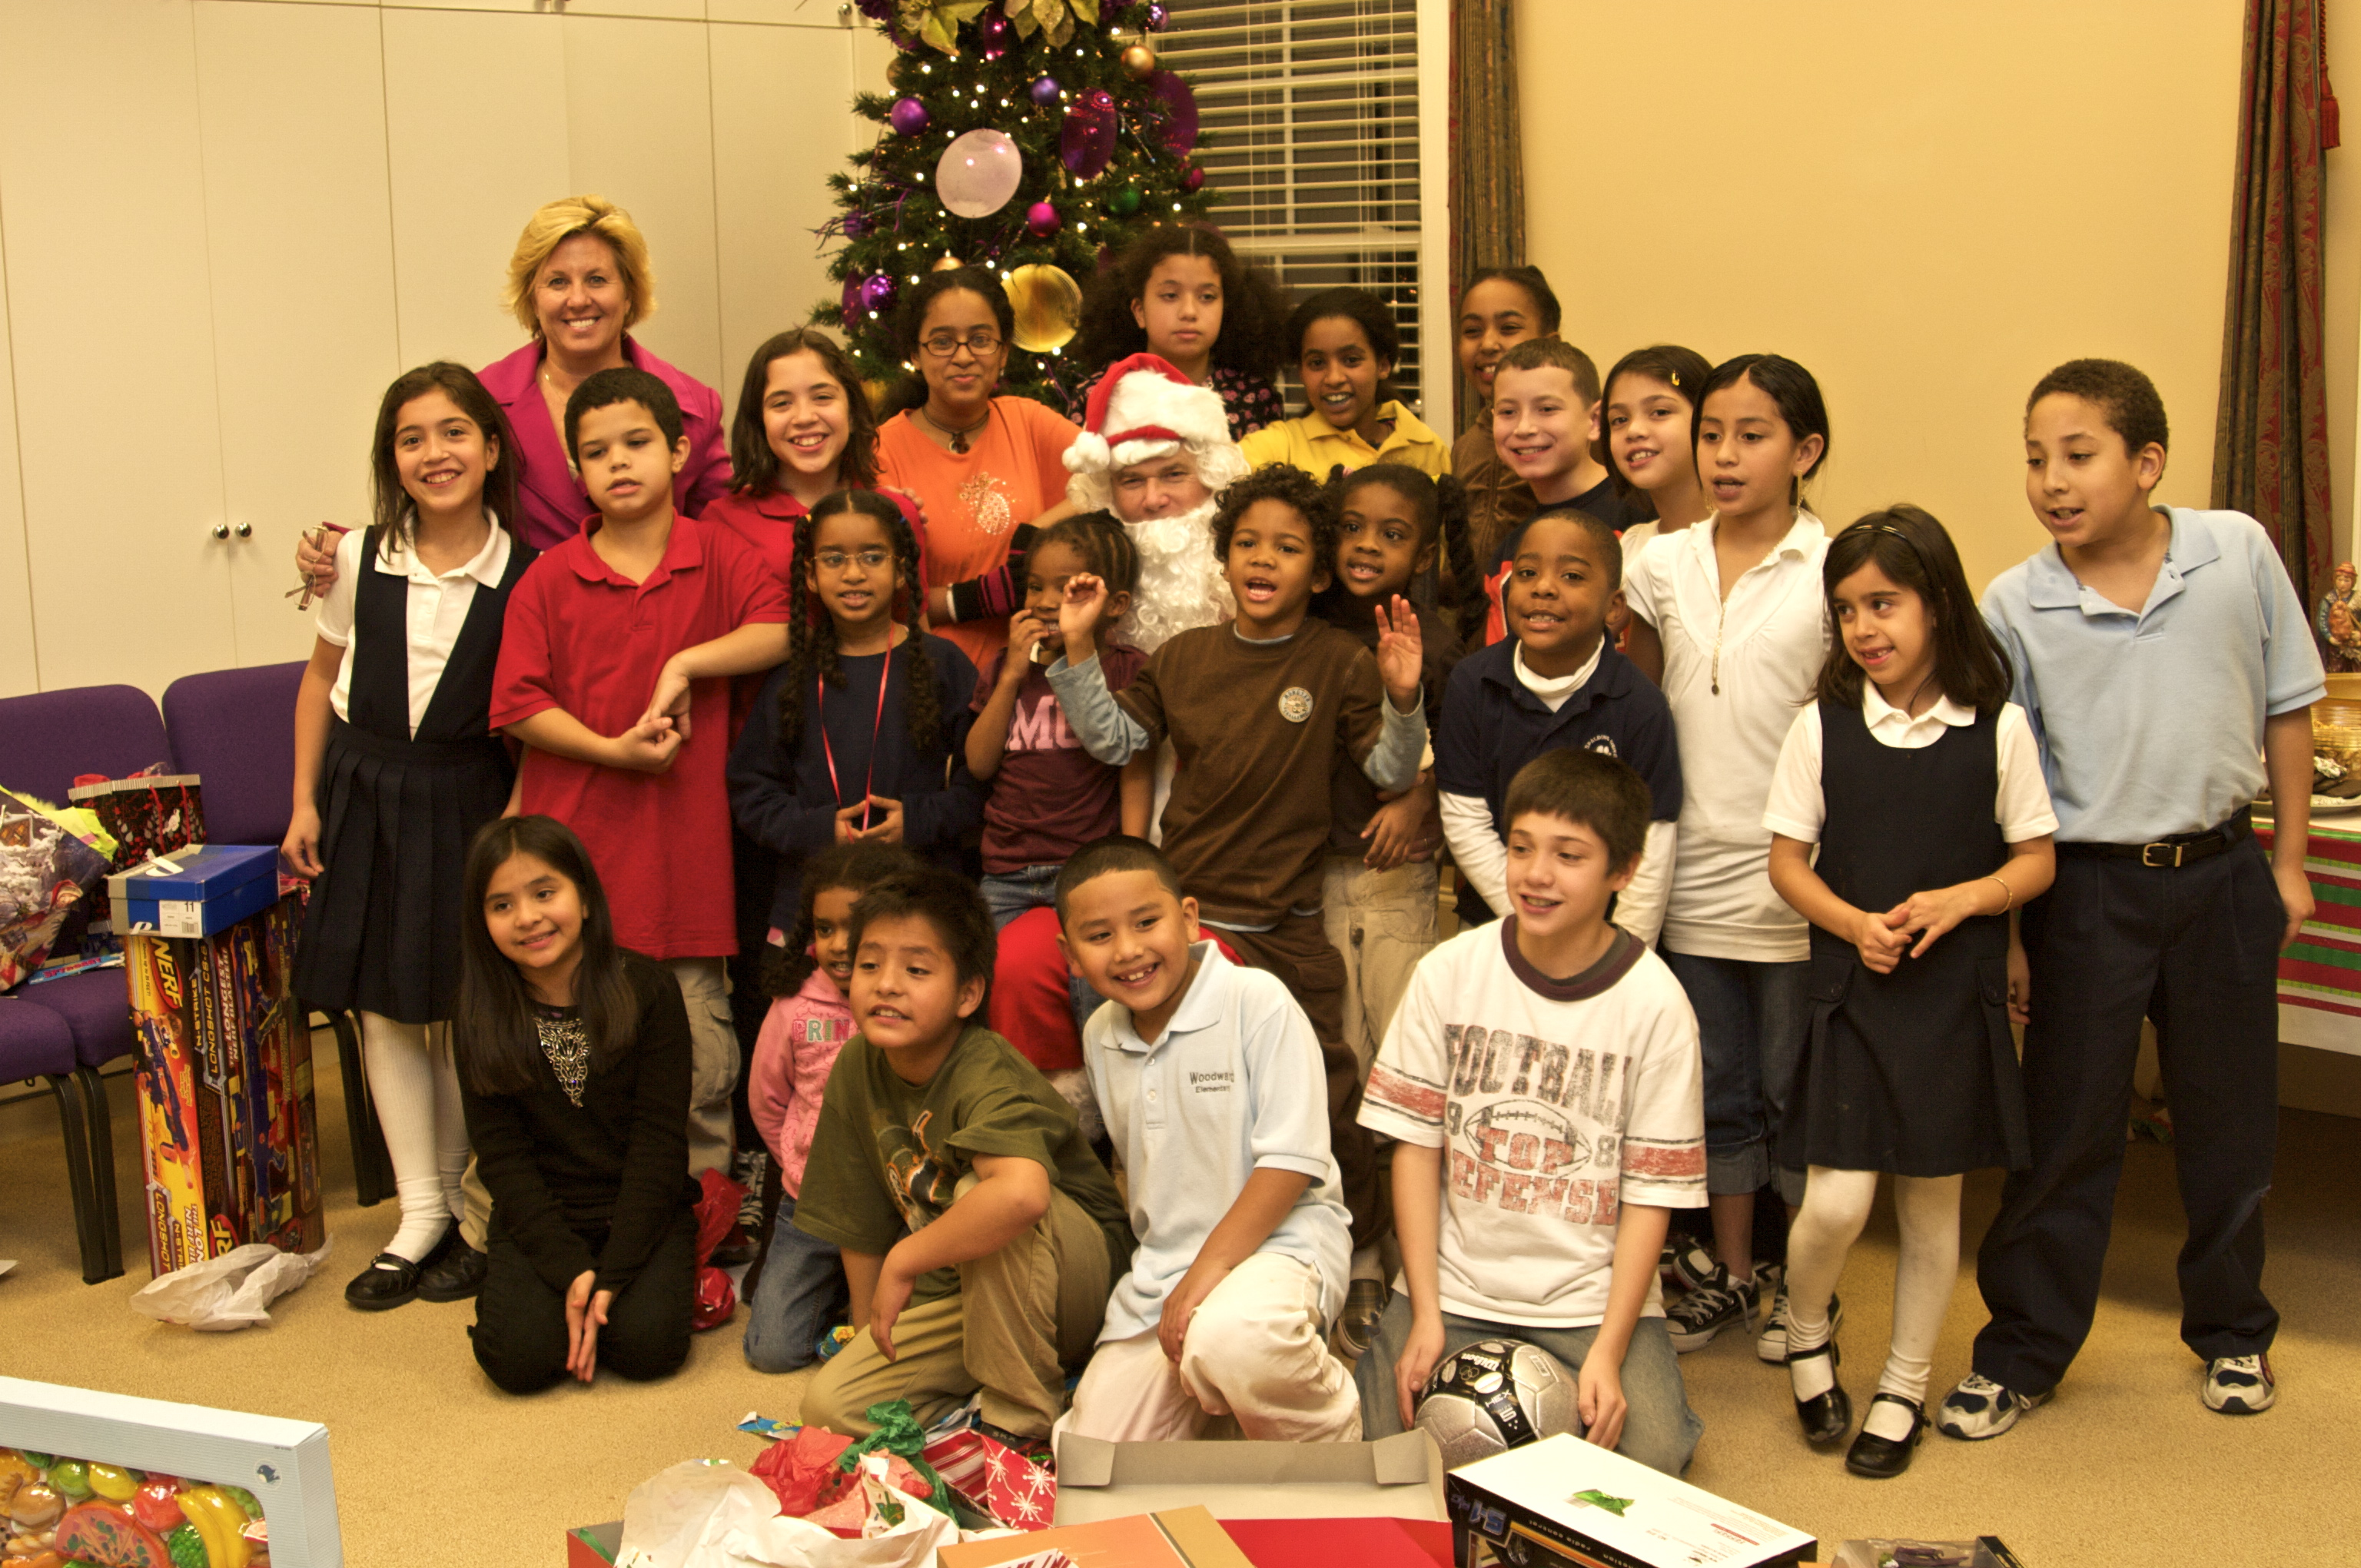 Dr. Debra Gray King and Dr. Charles C. Cooper with the Boys and Girls Club of Atlanta